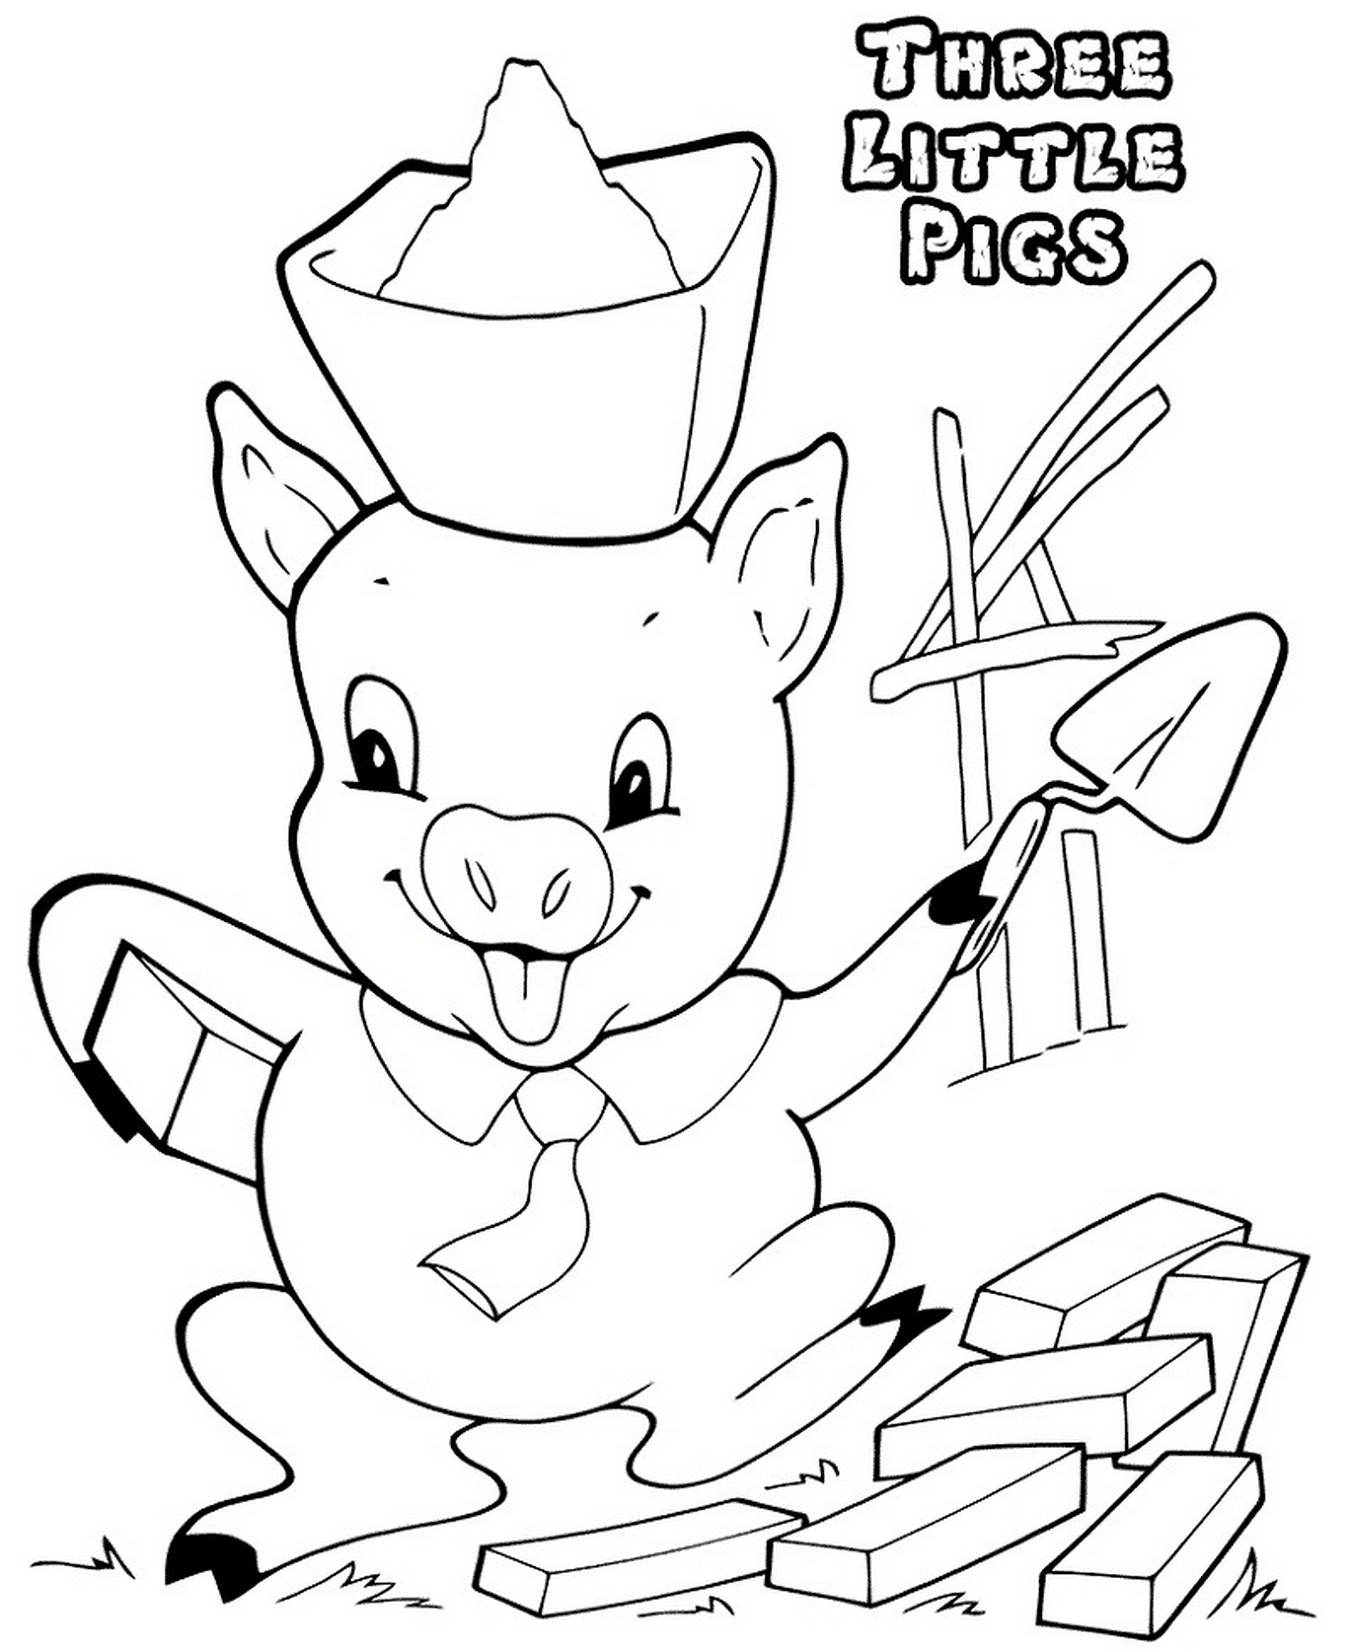 Three Little Pigs Coloring Pages For Preschool For Kids Learning Printable